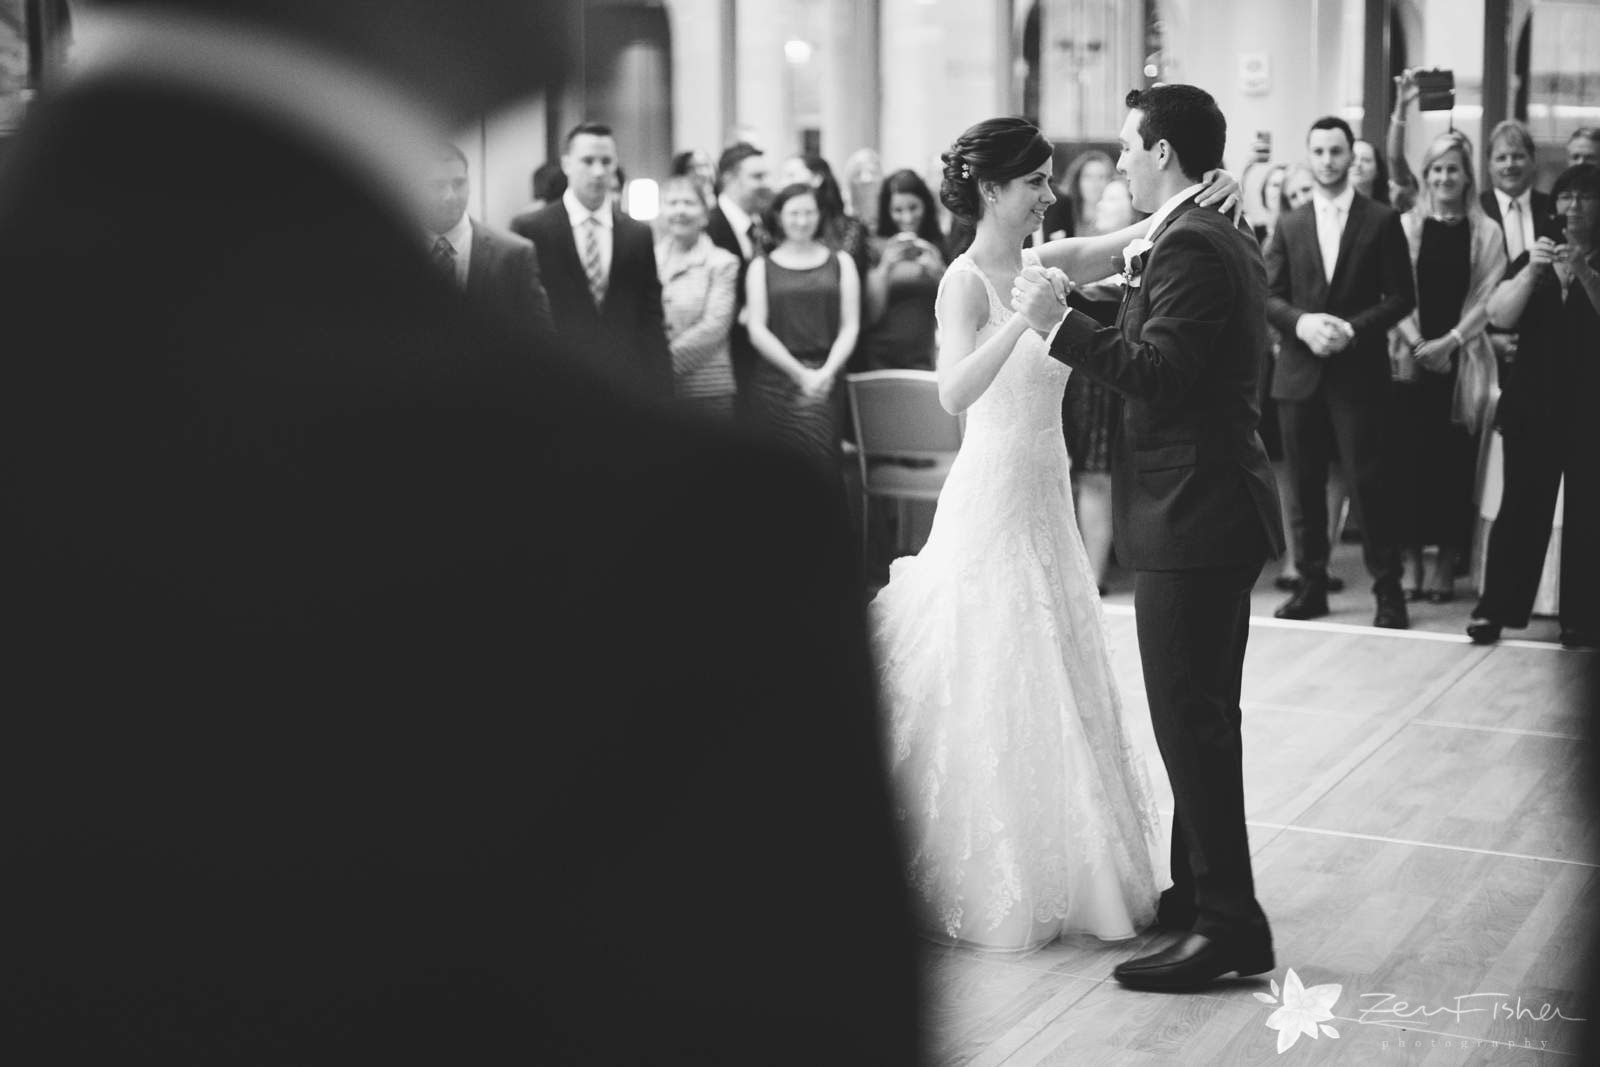 Bride and groom looking into each other's eyes, peeking over guest's shoulder to watch first dance.